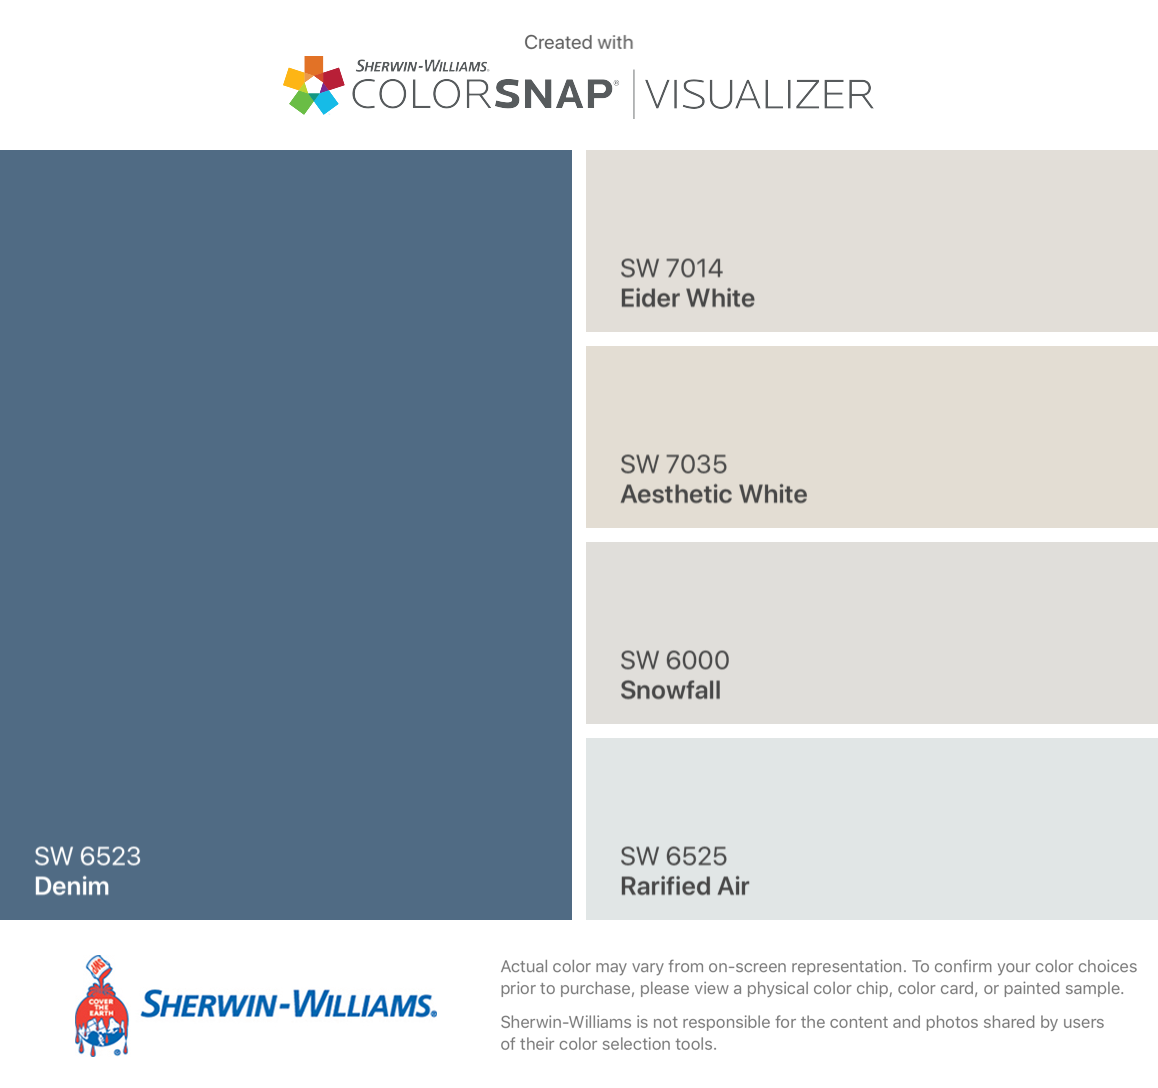 I Found These Colors With Colorsnap Visualizer For Iphone By Sherwin Williams Denim Sw 6523 Eider White Sw 7 Color Sherwin Williams Sherwin William Paint